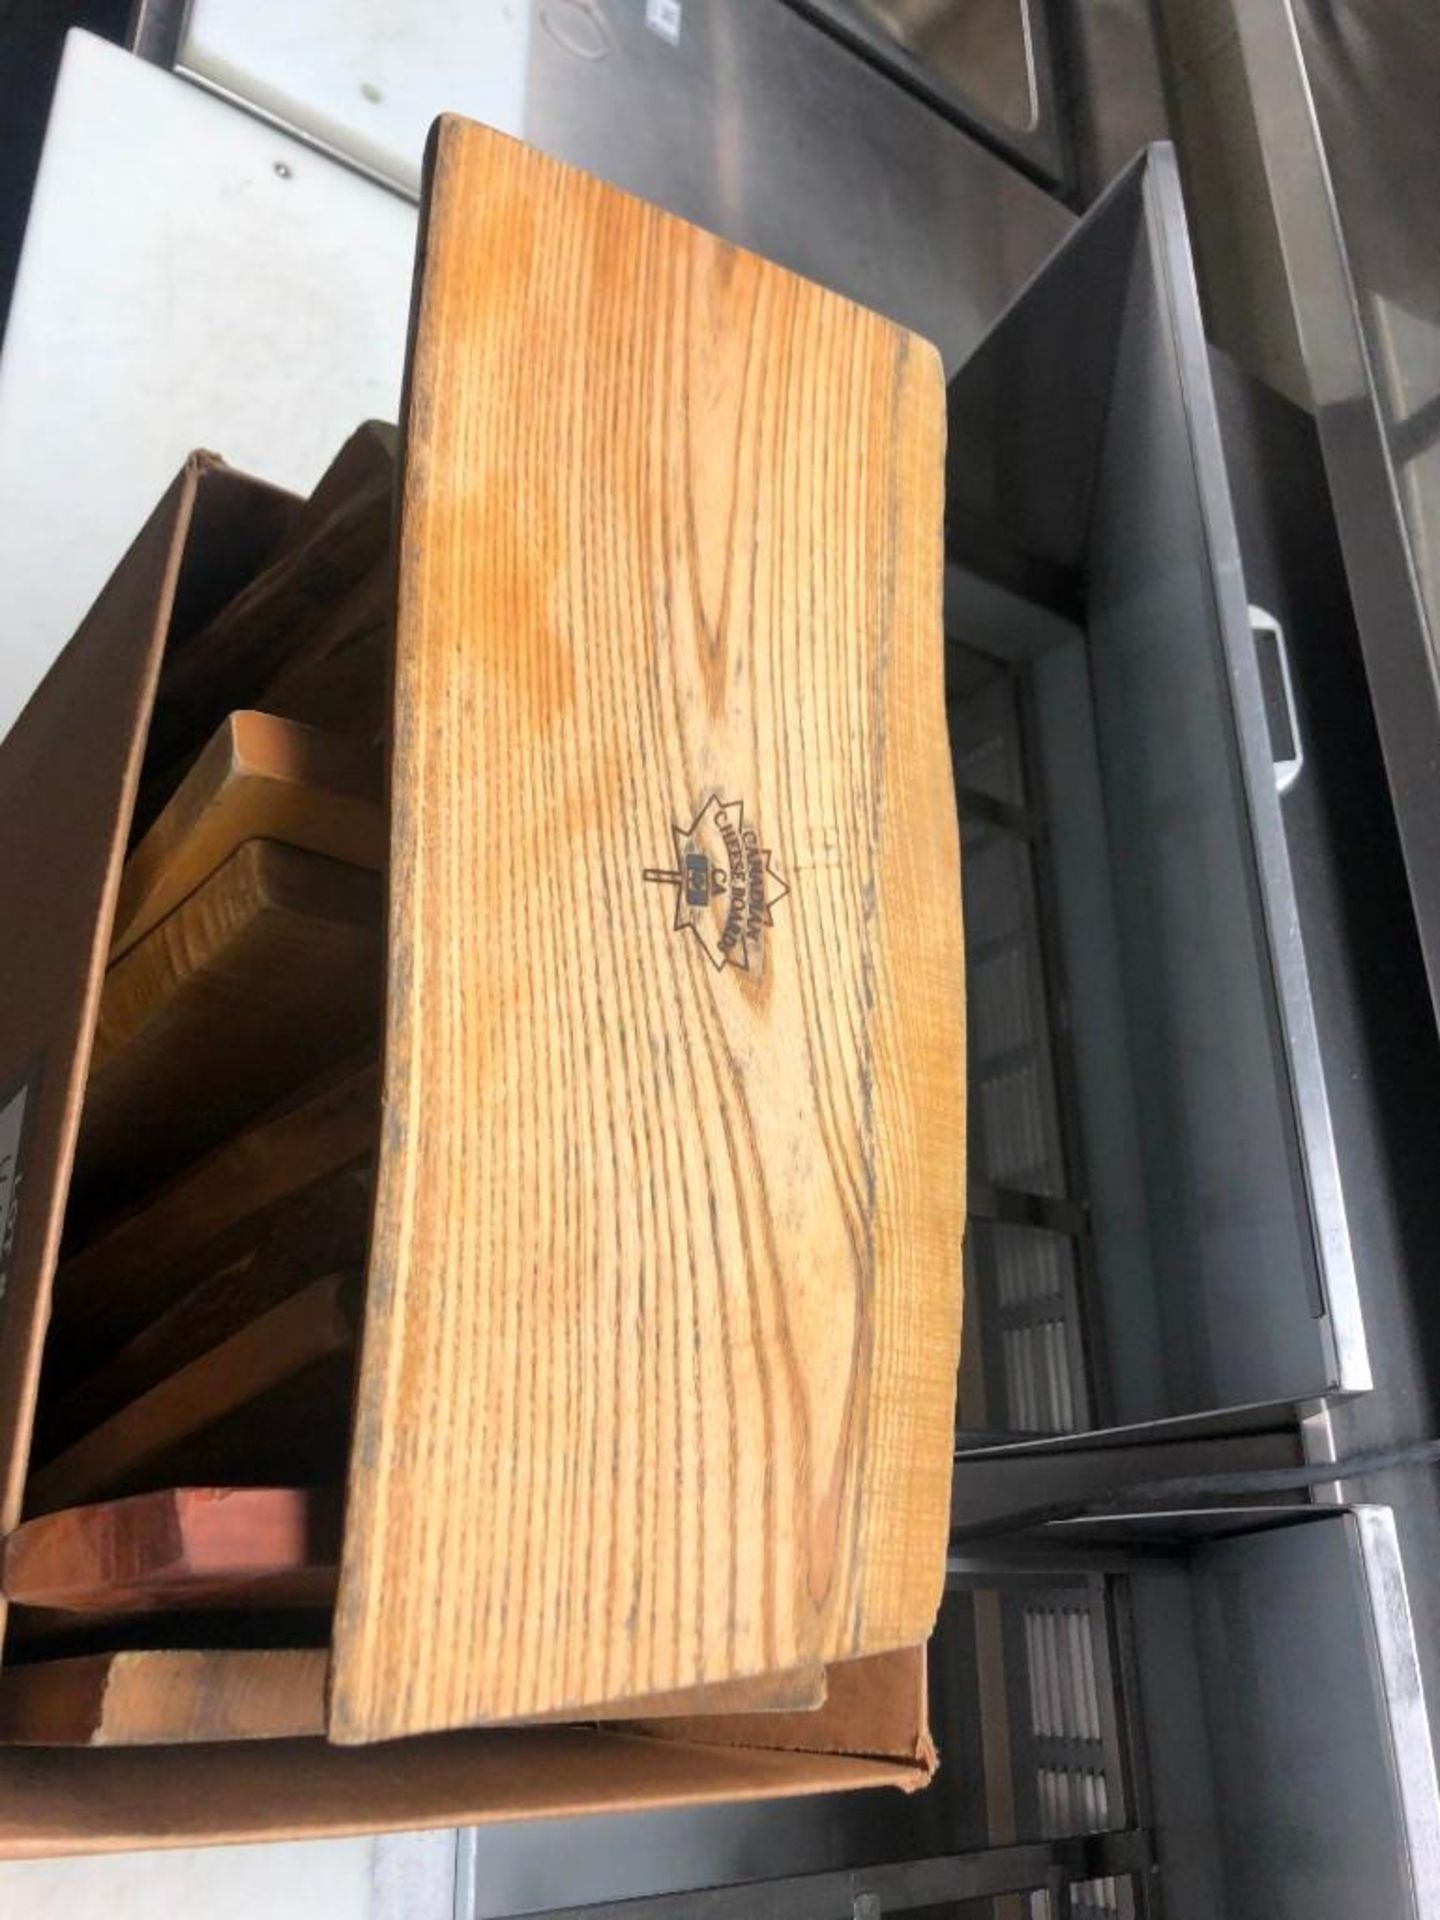 BOX OF HAND CRAFTED CANADIAN CHEESE BOARDS - Image 2 of 3